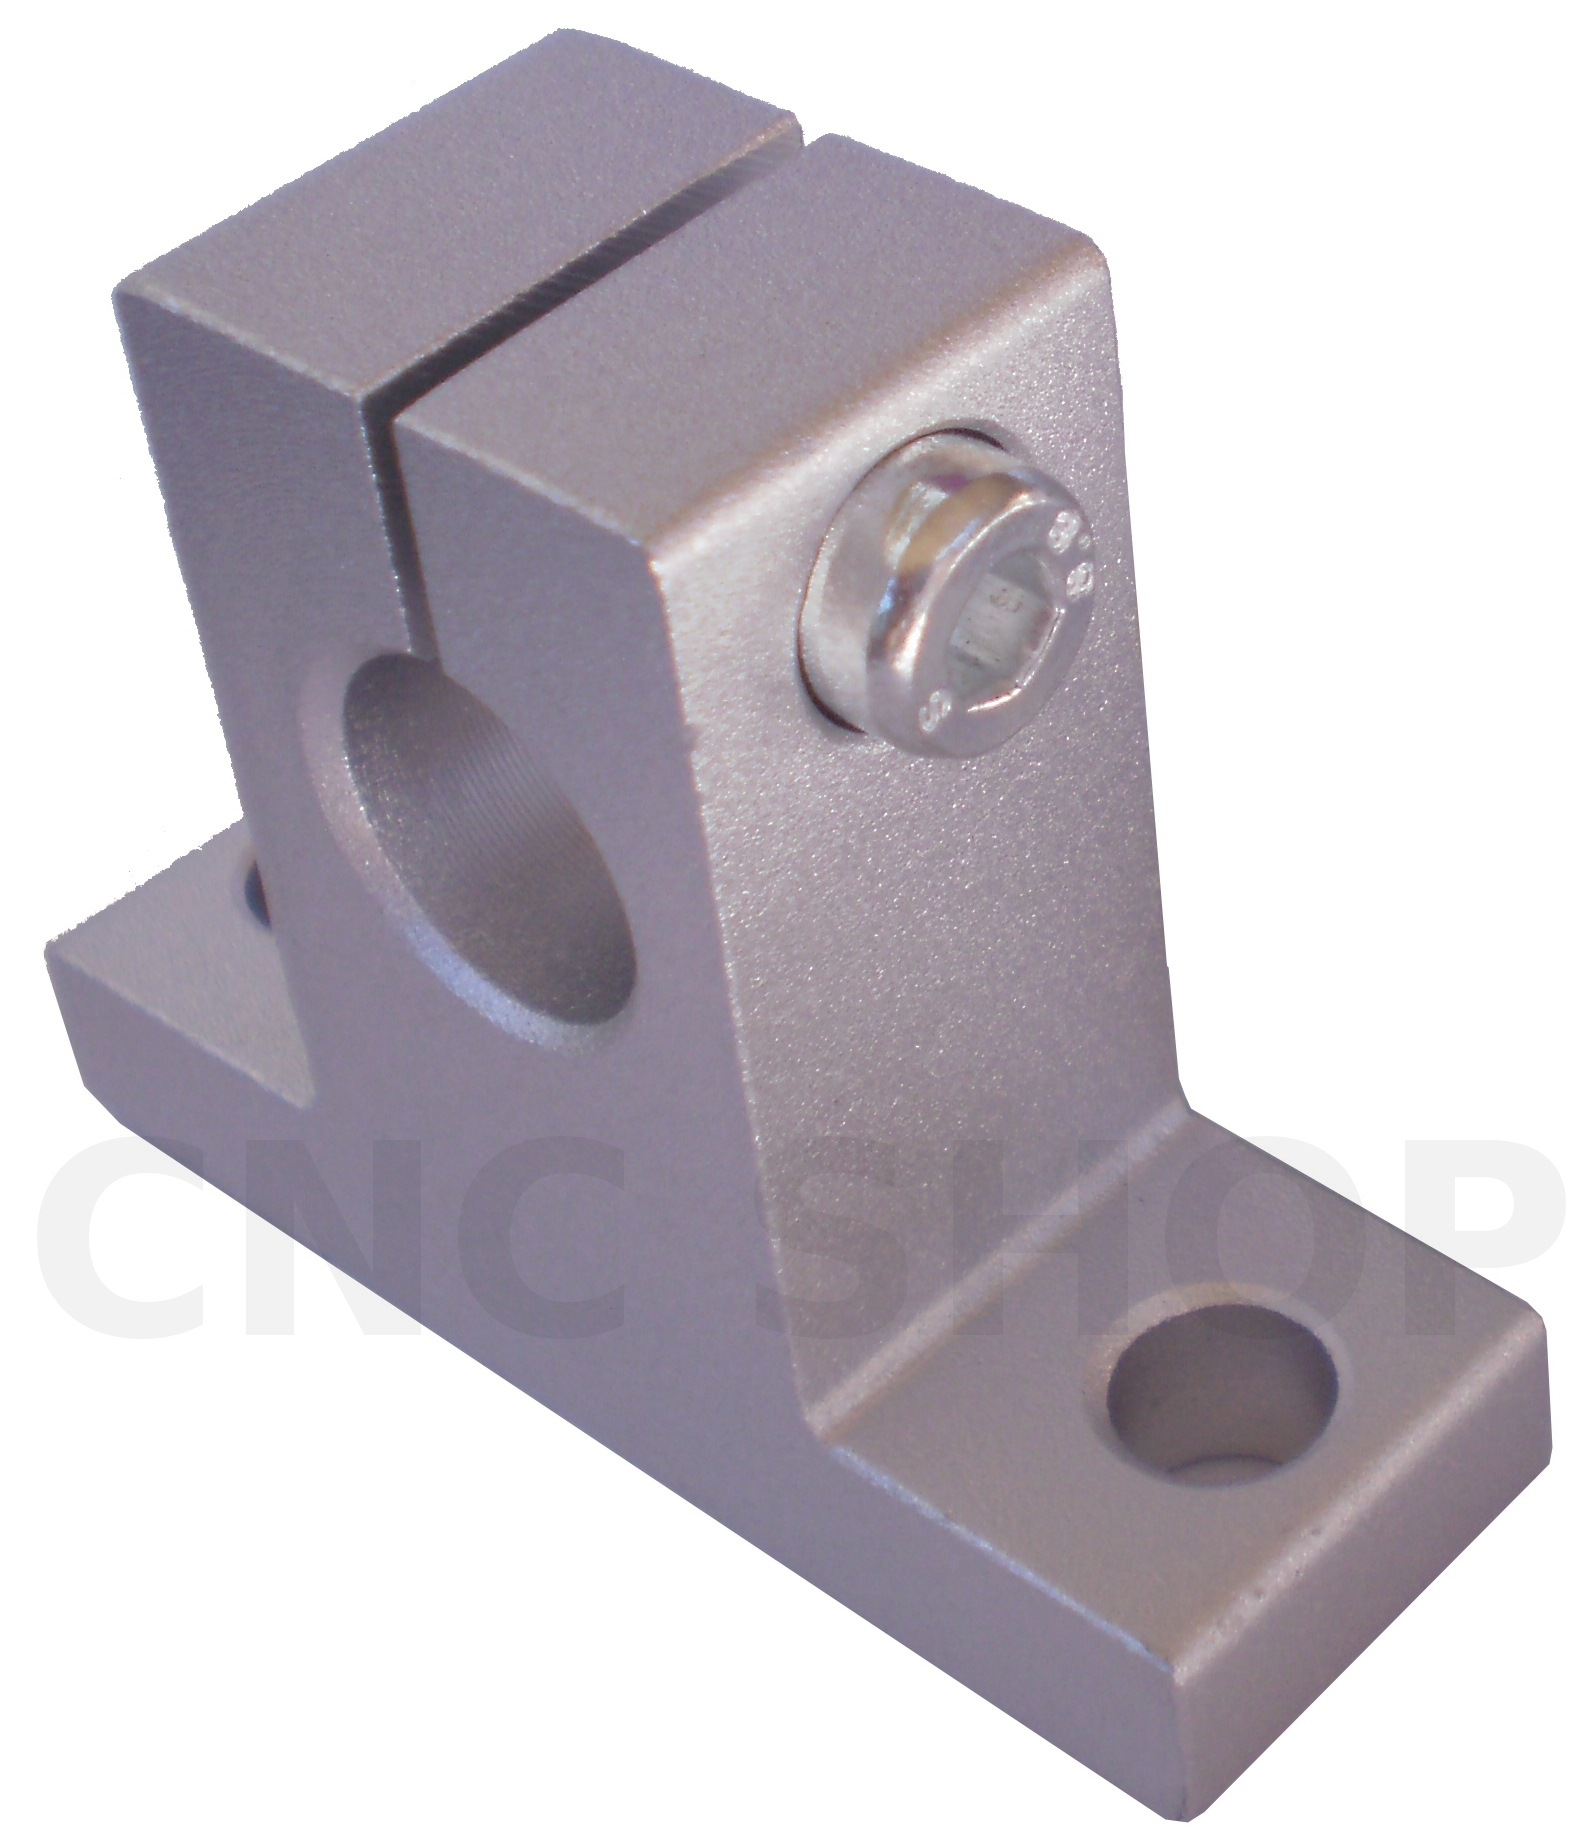 SK10 10mm STANDARD BOTTOM MOUNT SHAFT SUPPORT